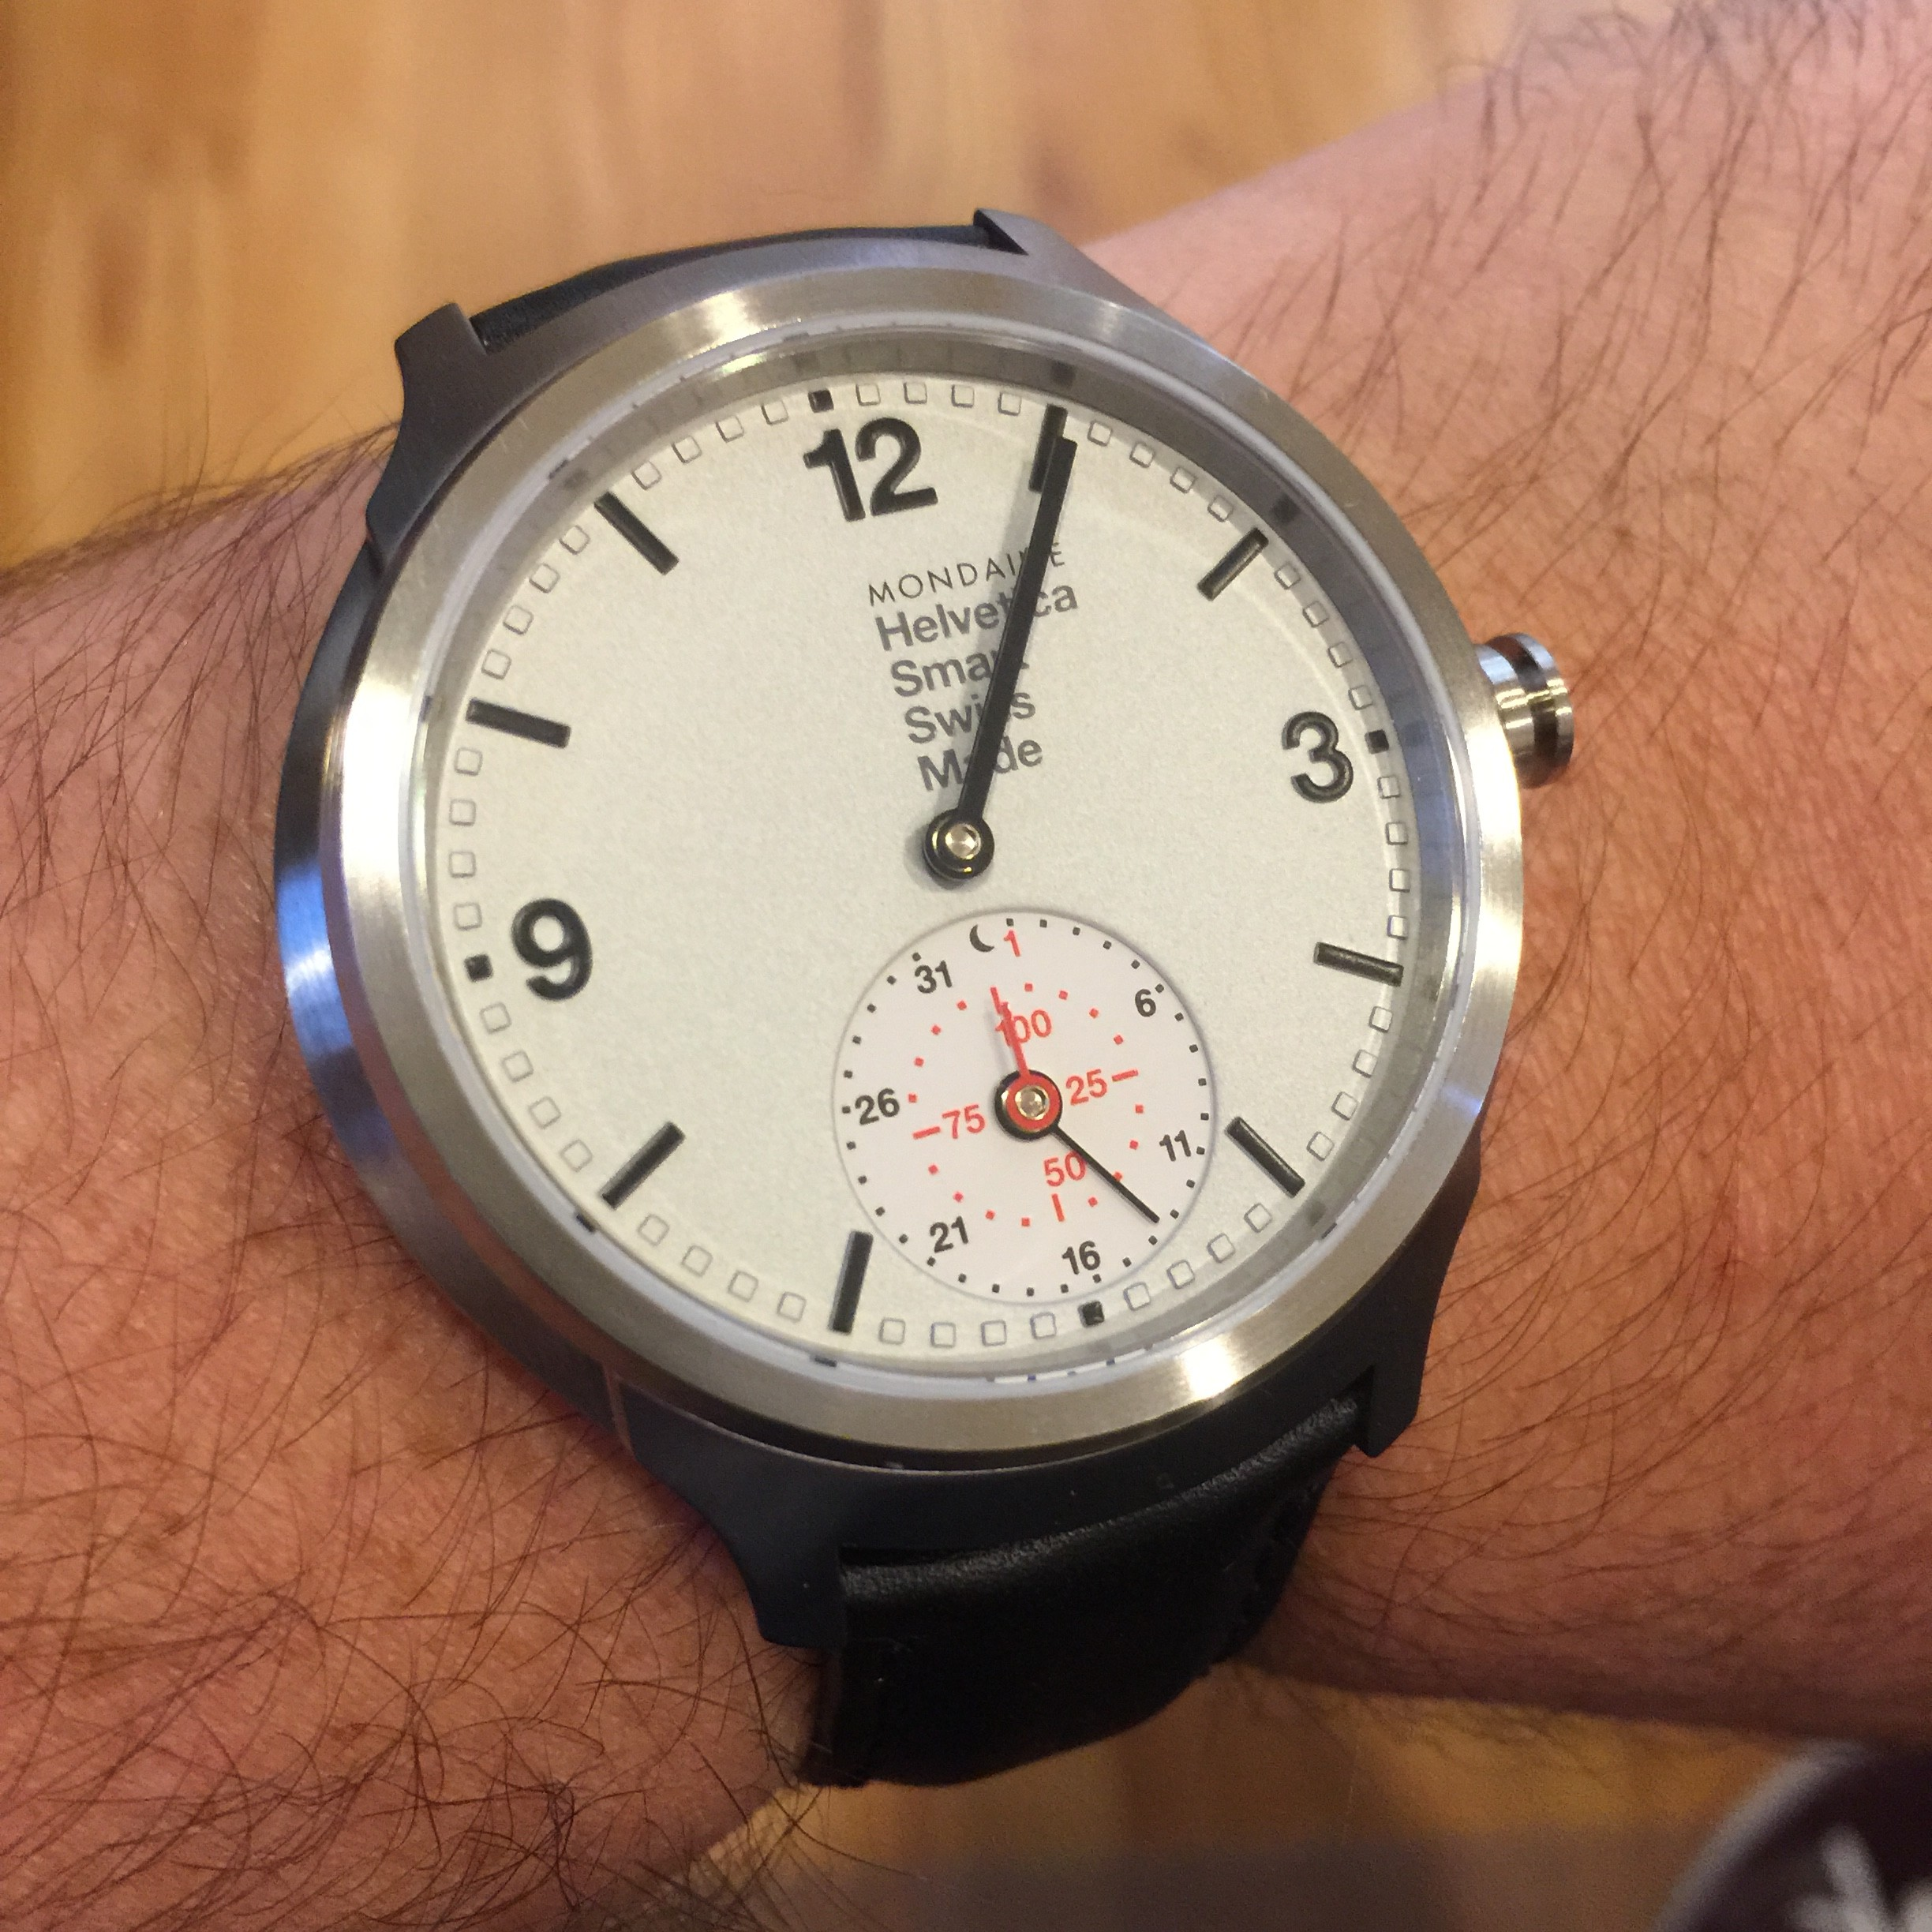 How Smart Is the Mondaine Helvetica Smart Watch?